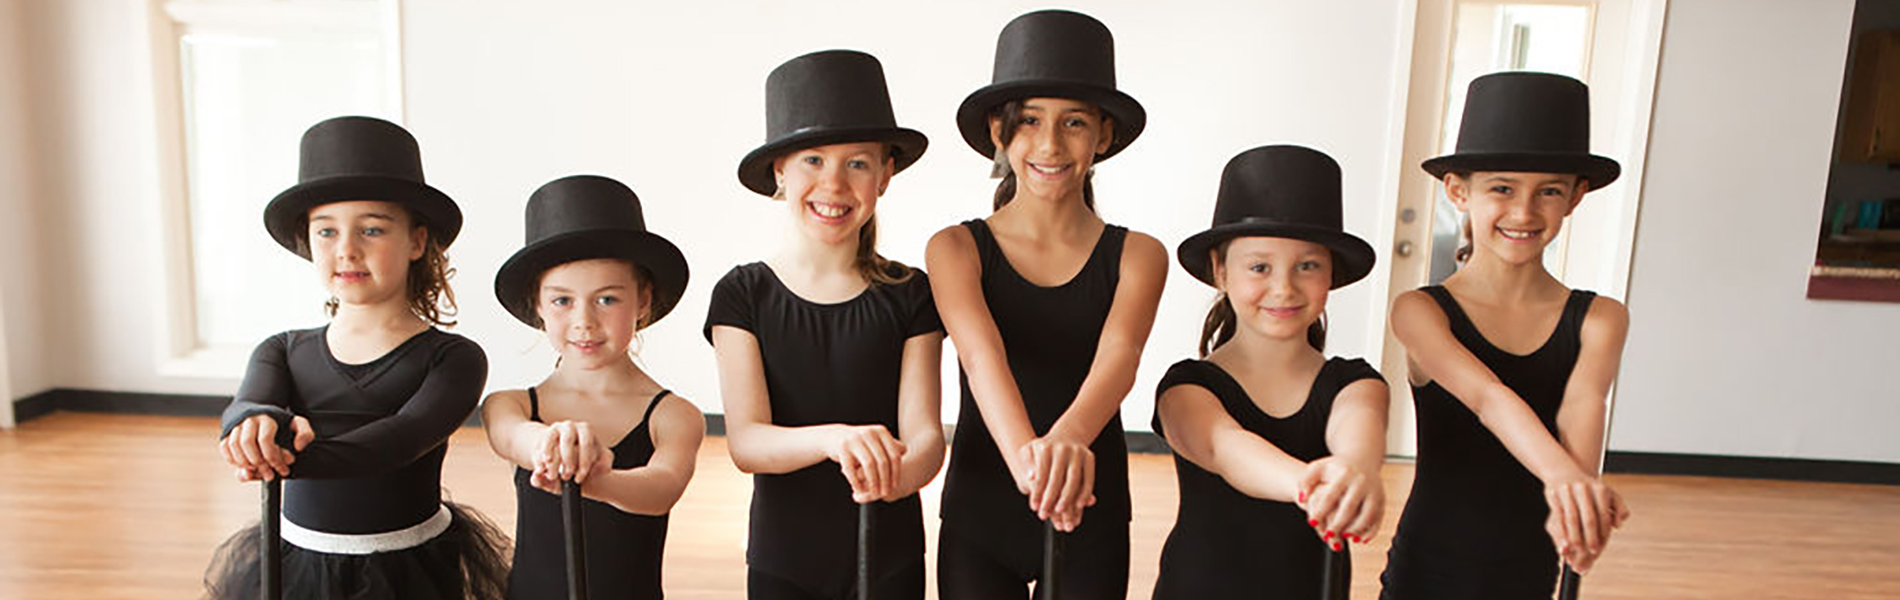 Calgary Musical Theatre classes for kids